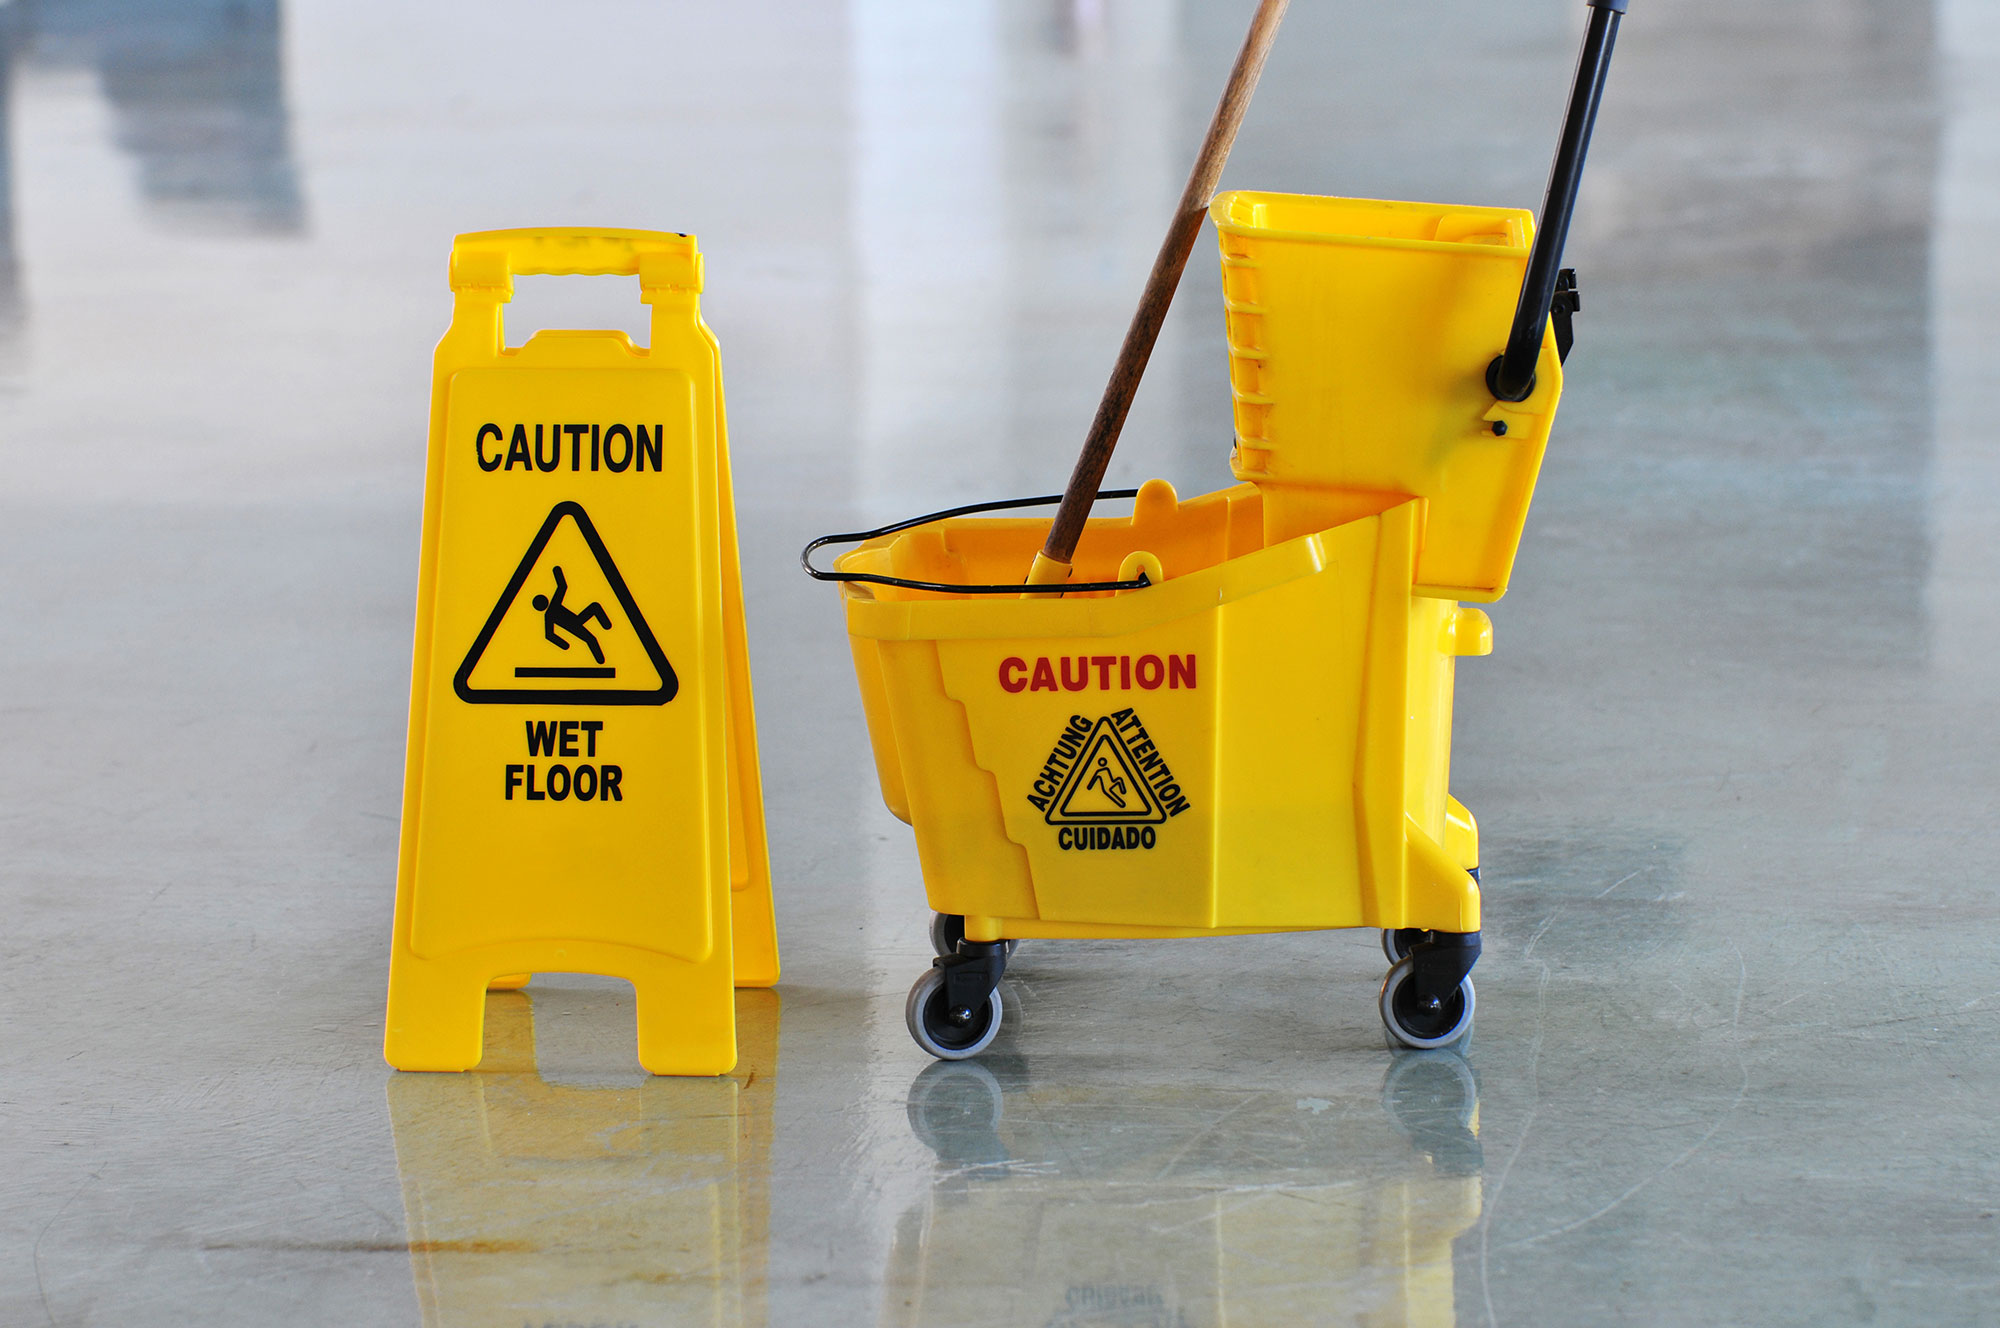 Slip and fall accidents account for 8 million hospital visits a year